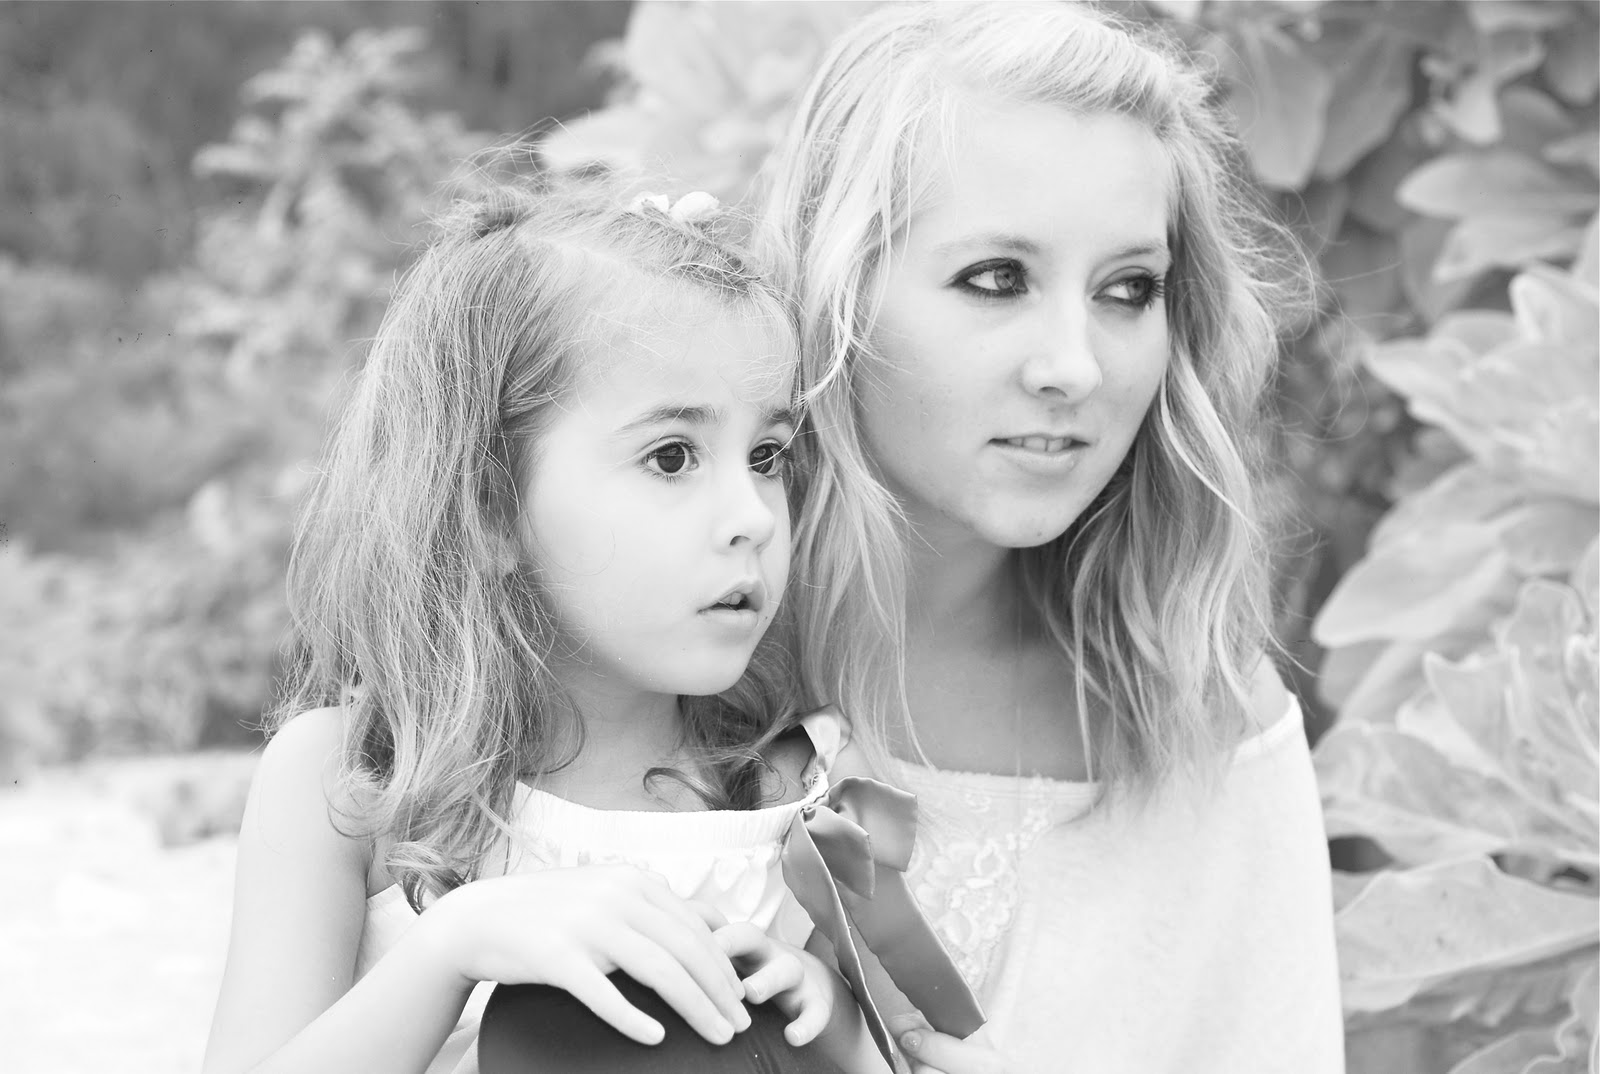 Brynja Photography: Amy and Sophia